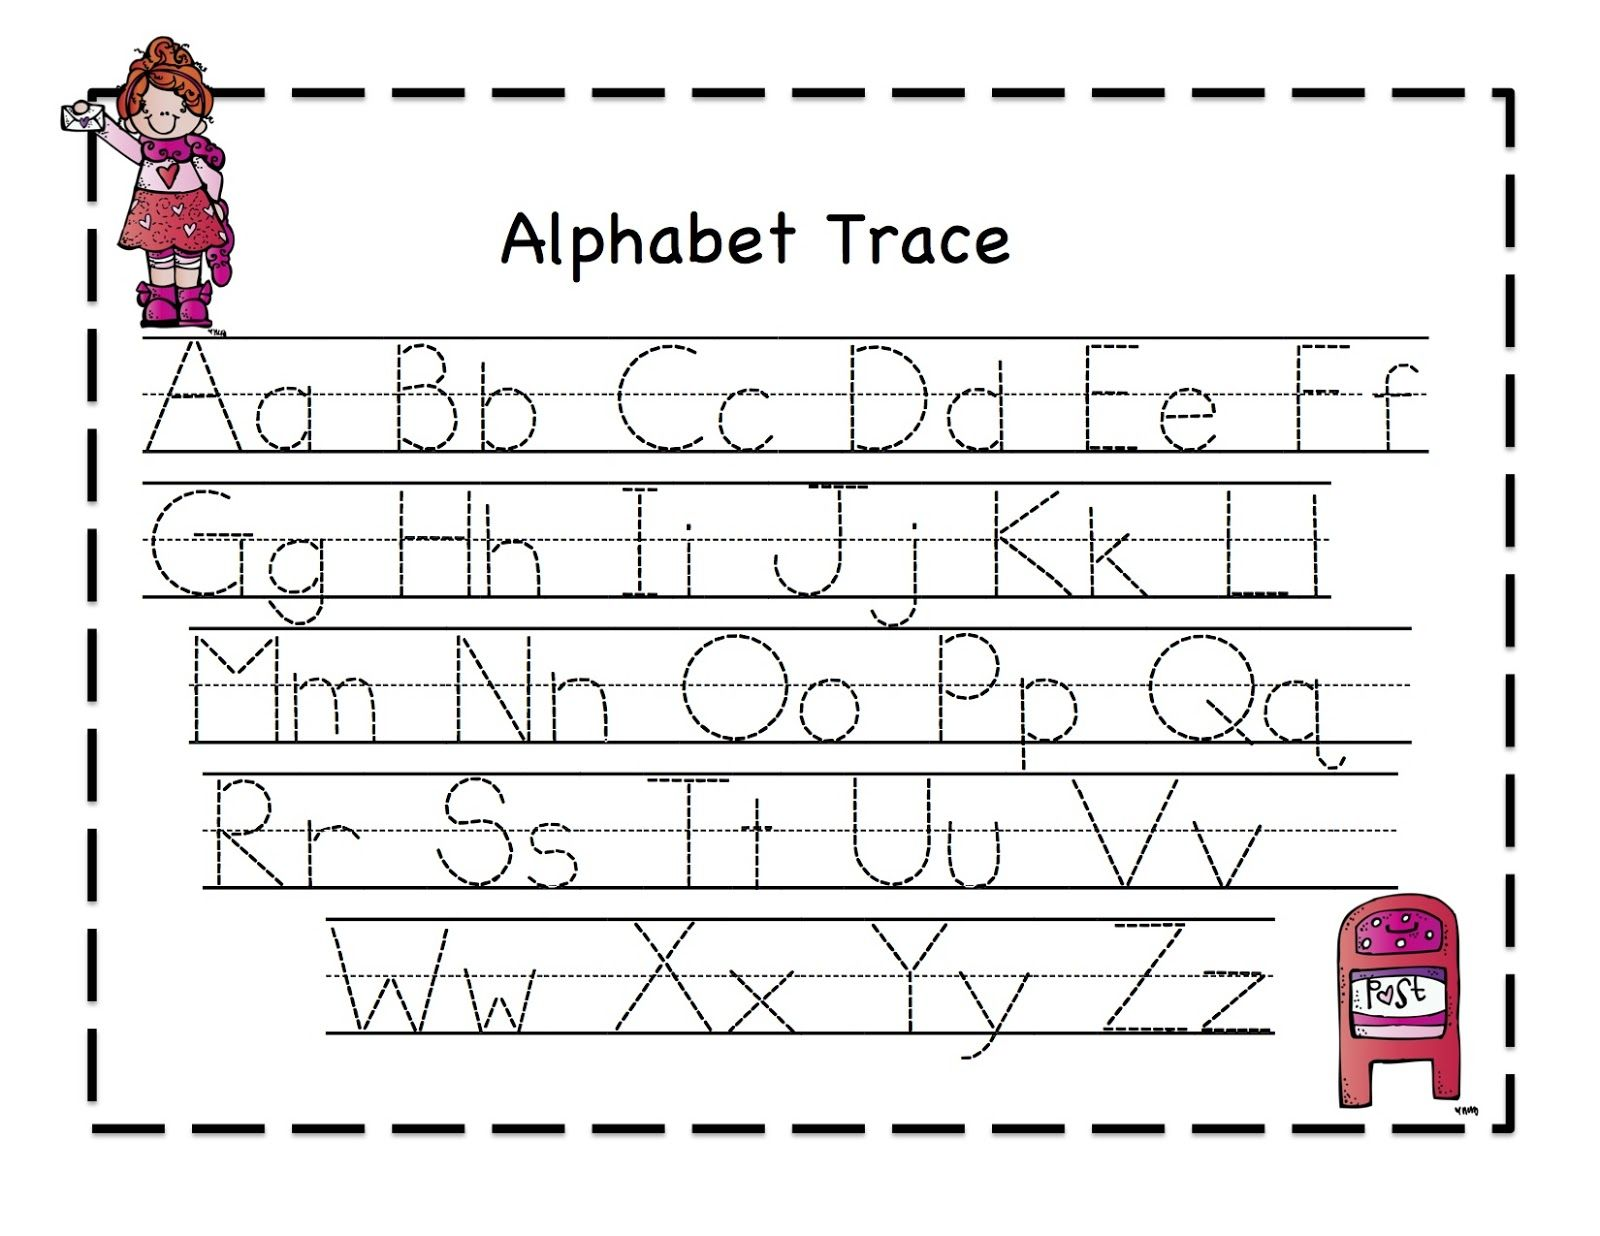 Uncategorized Preschool Worksheets Tracing Letters abc tracing sheets for preschool kids kiddo shelter alphabet extent fun learning with worksheets loving printable smart eworksheet